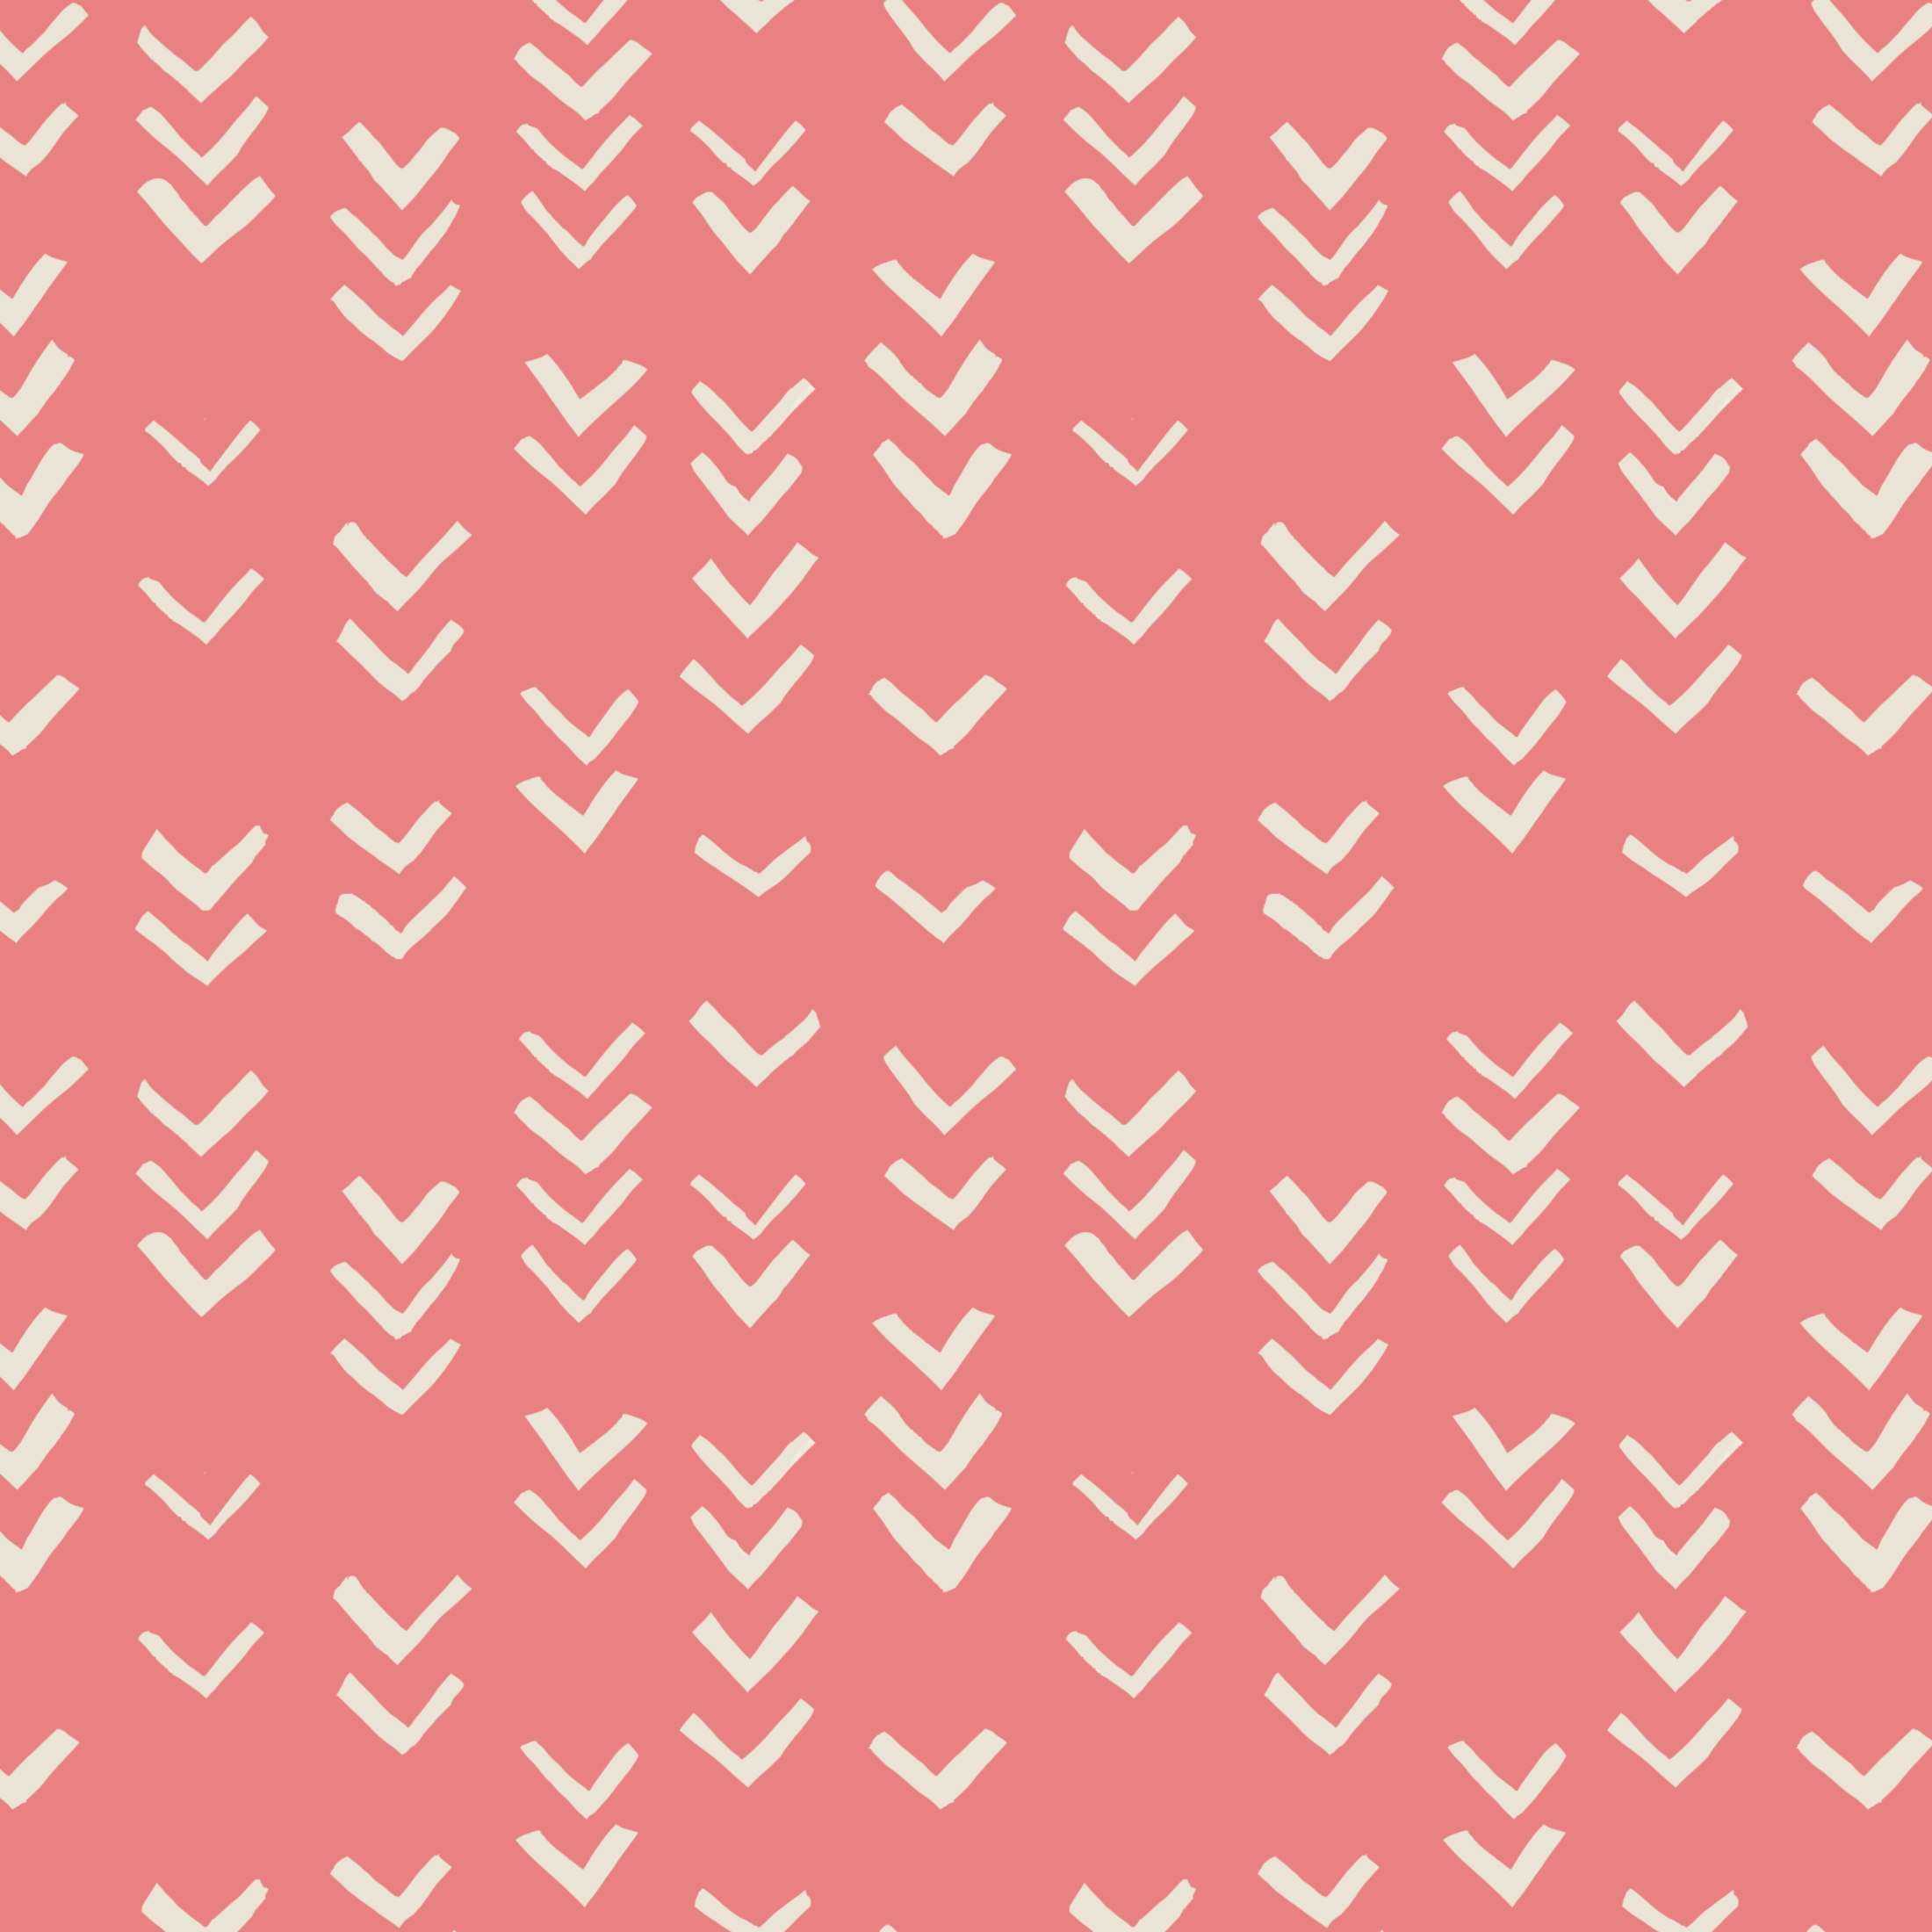 very abstract seagulls pattern